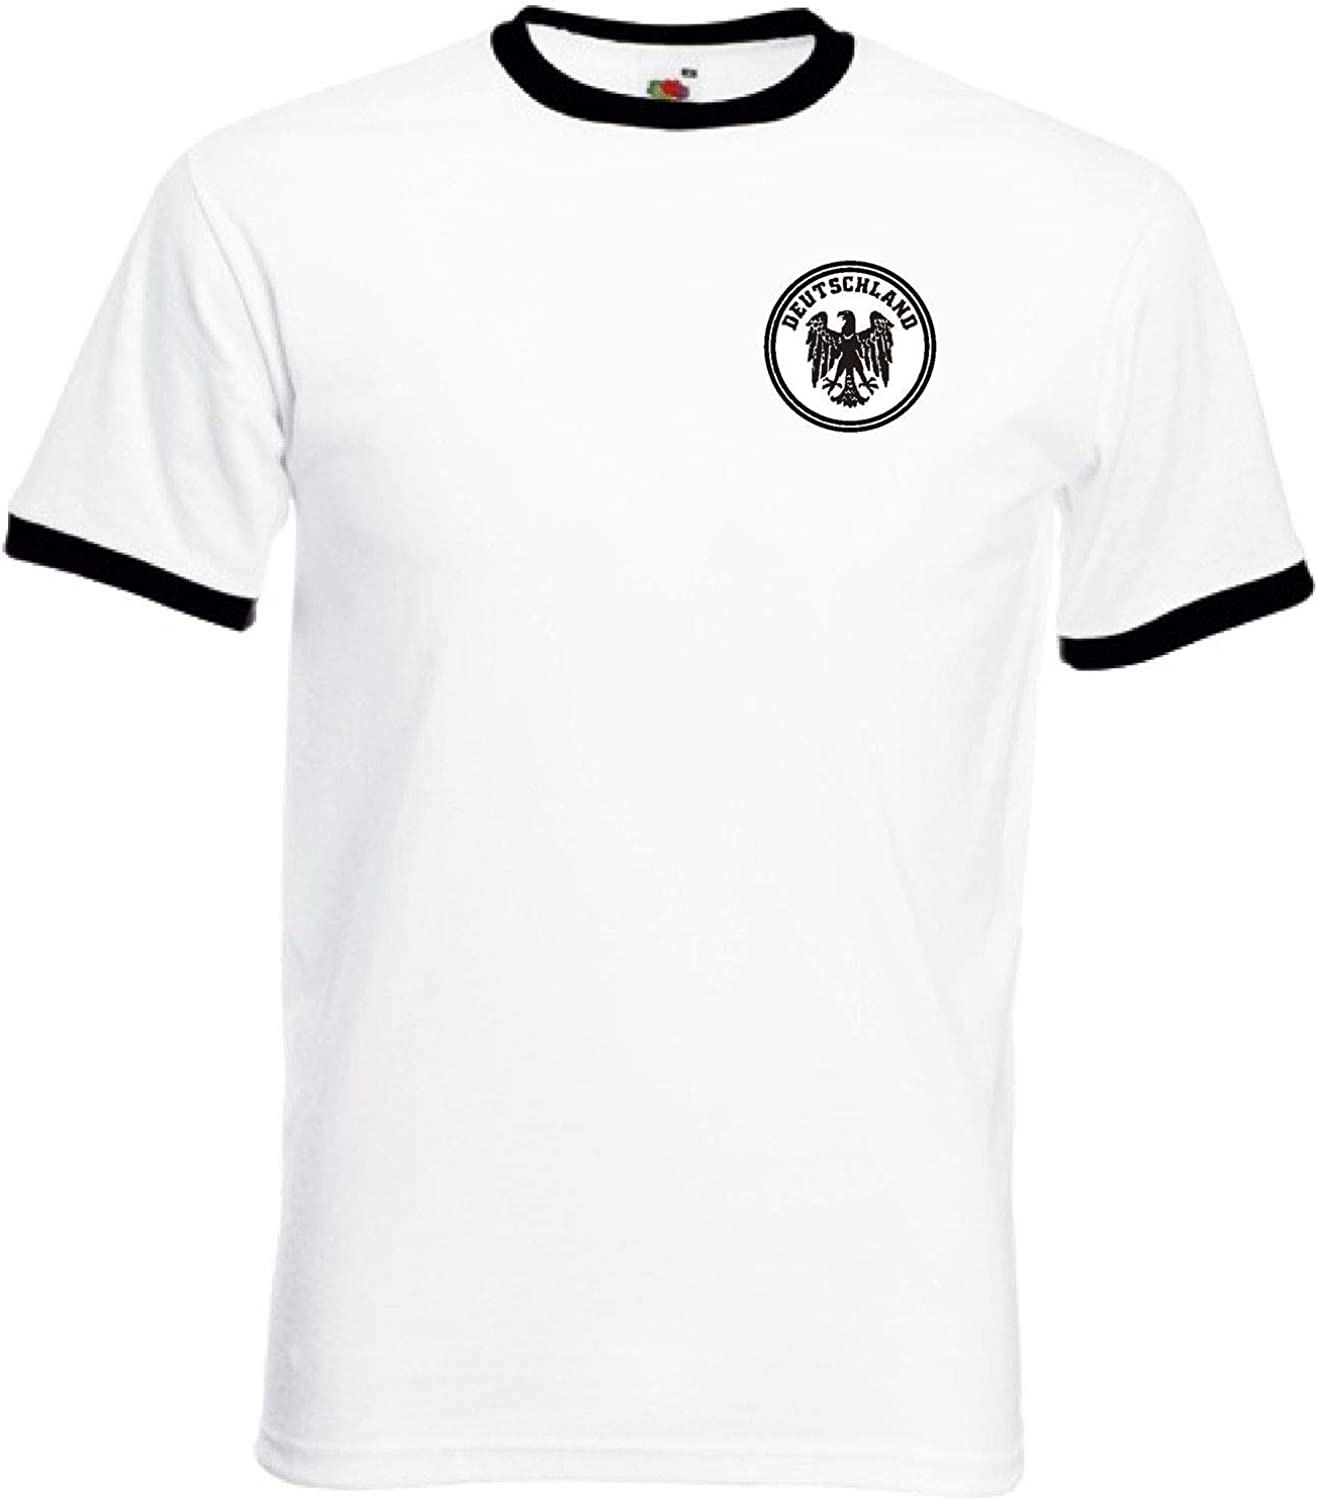 Deutschland Eagle Long Sleeve T-Shirt Germany Soccer Football World Cup 2015